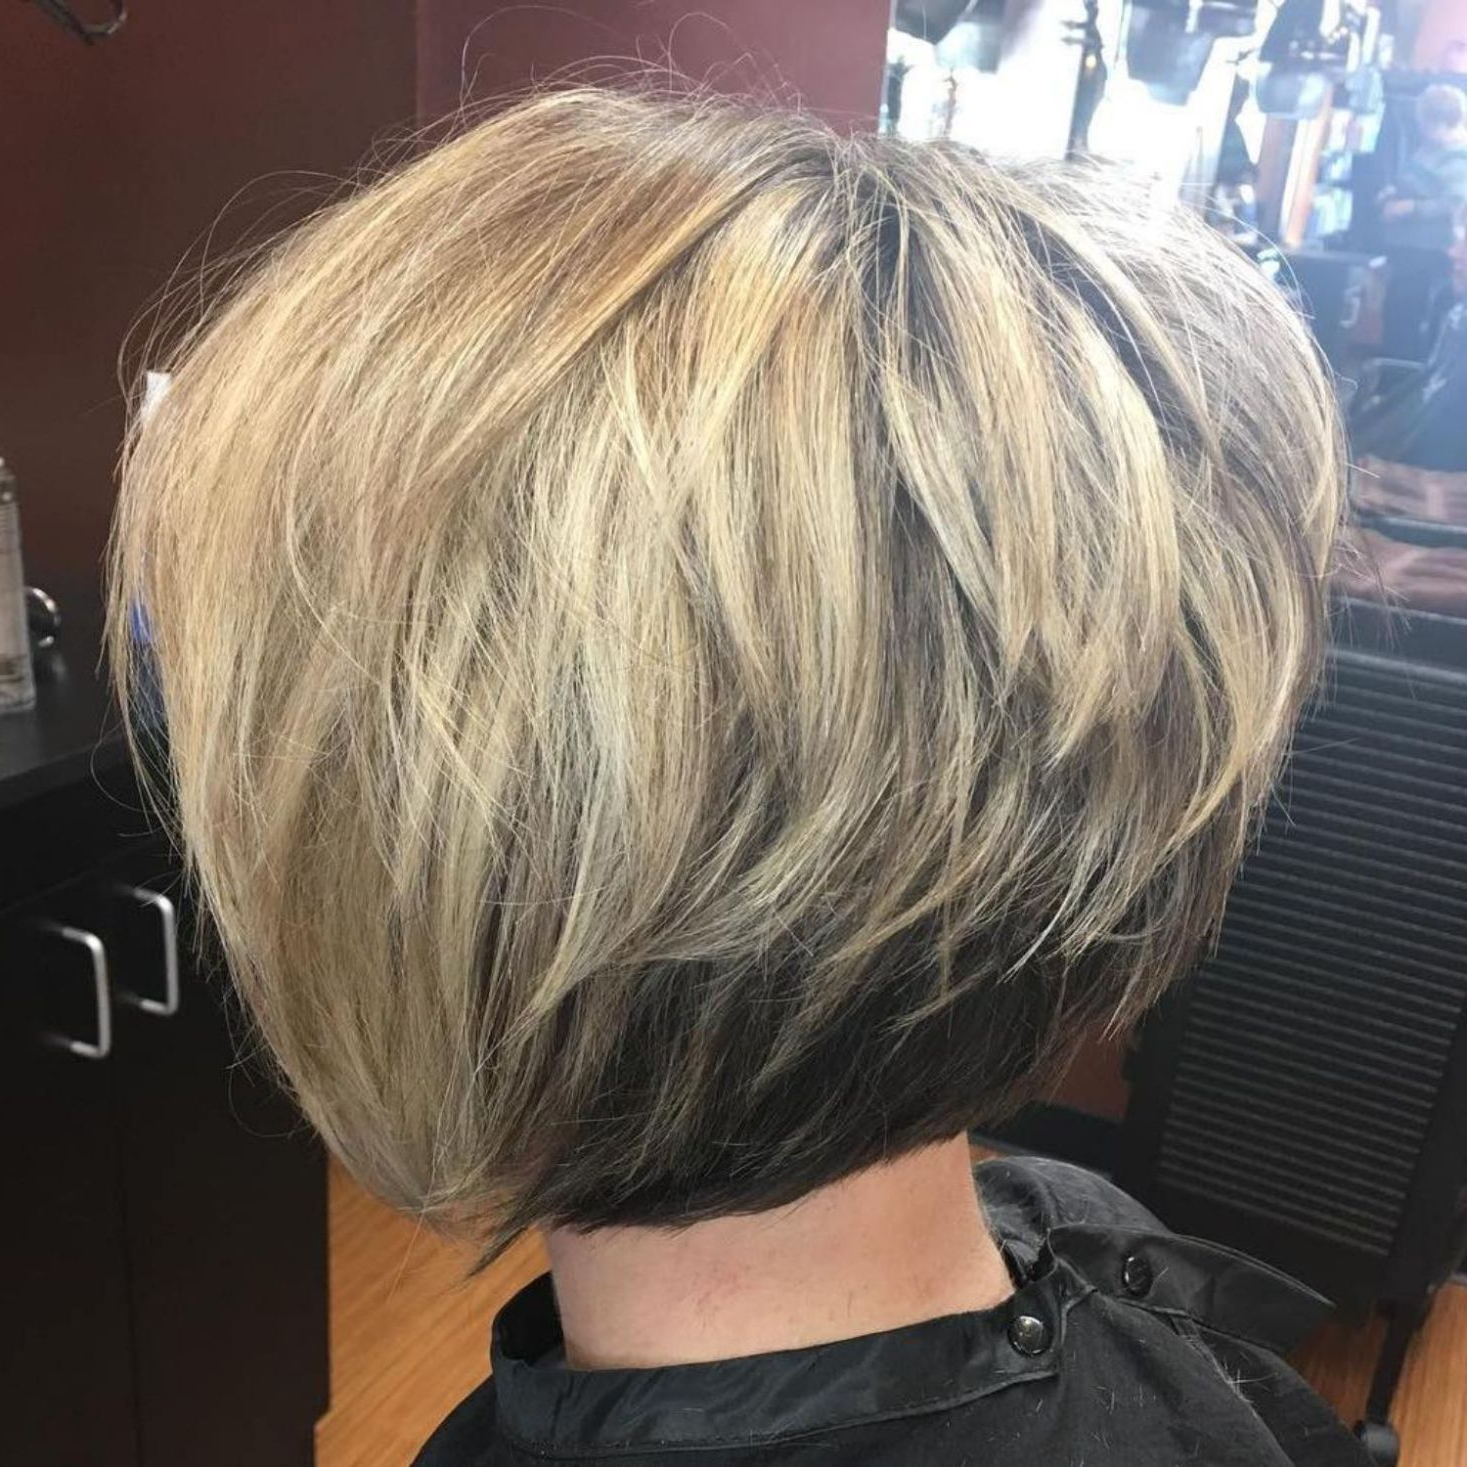 50 Trendy Inverted Bob Haircuts | Hair | Pinterest | Hair With Glam Blonde Bob Haircuts (View 5 of 20)